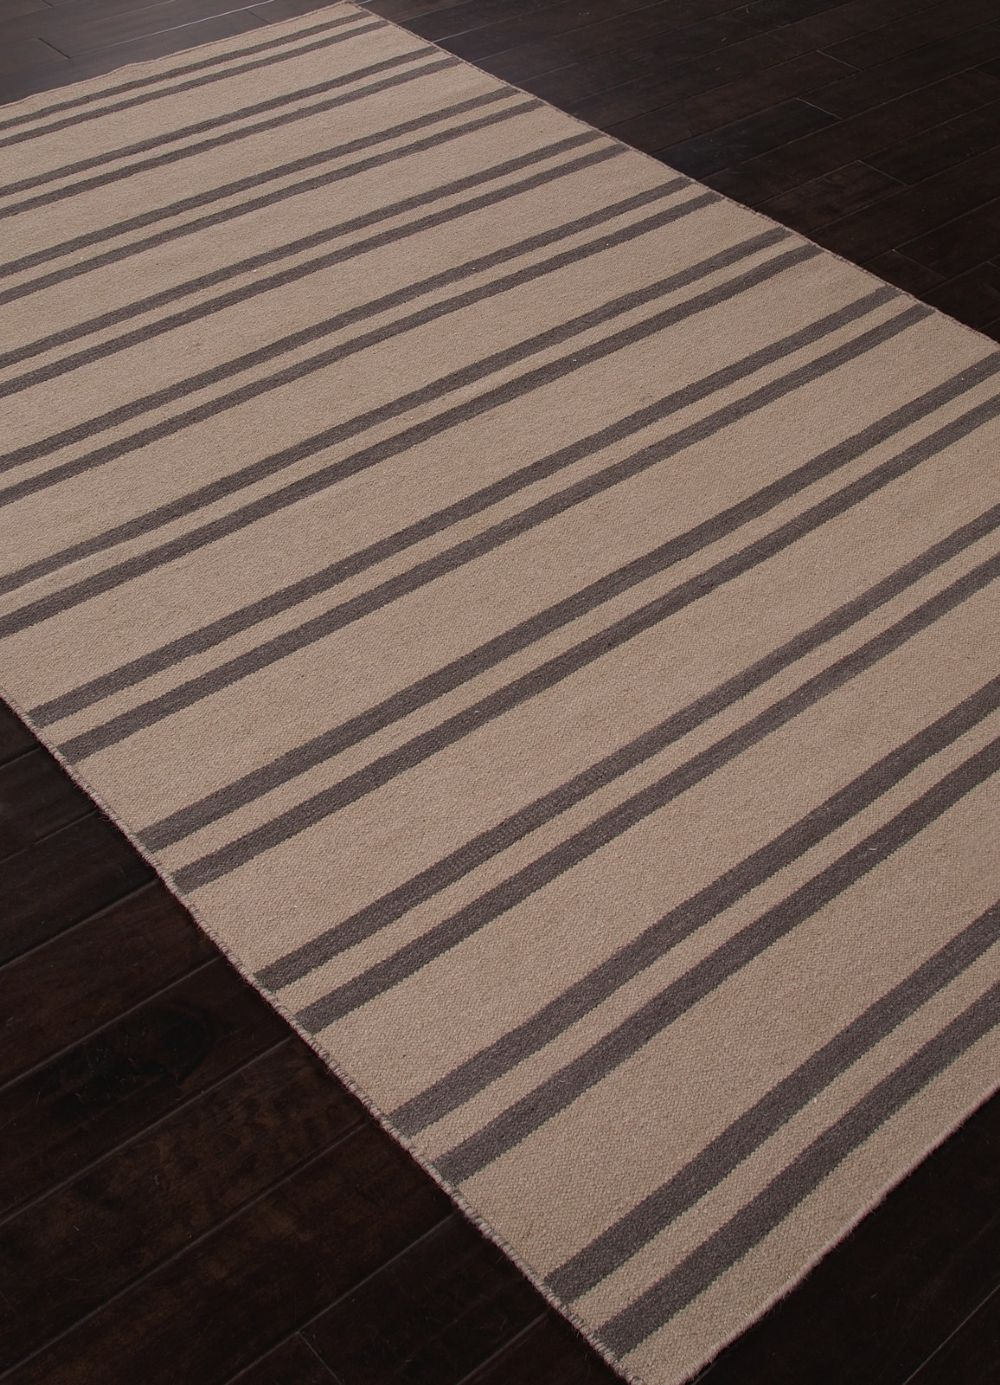 jaipur maroc solid/striped area rug collection